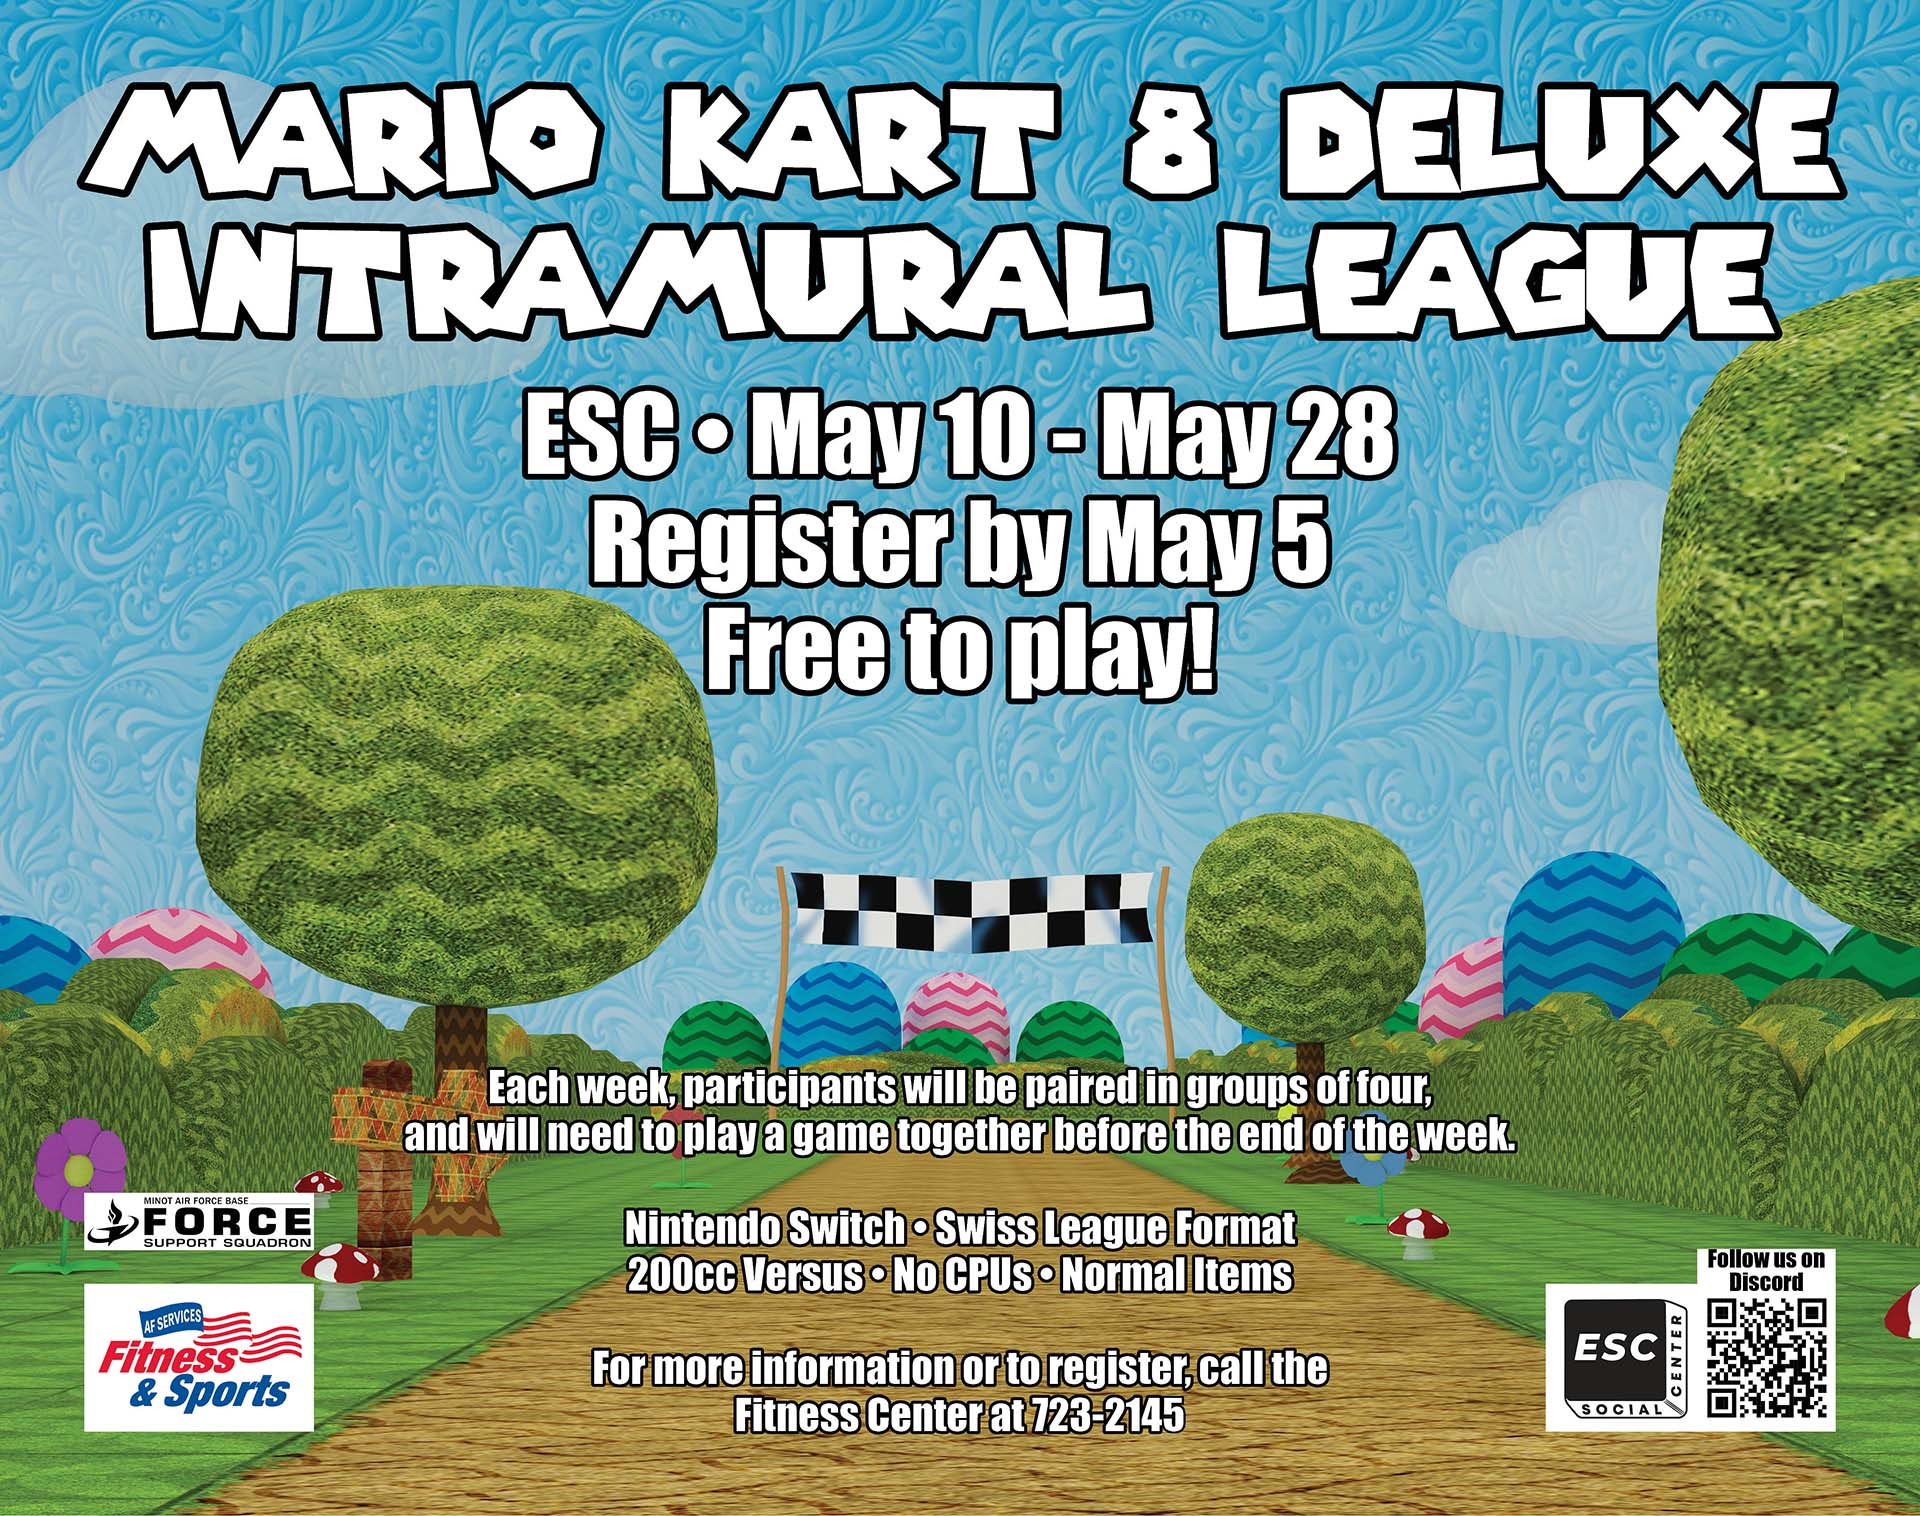 Mario Kart 8 Deluxe Intramural League